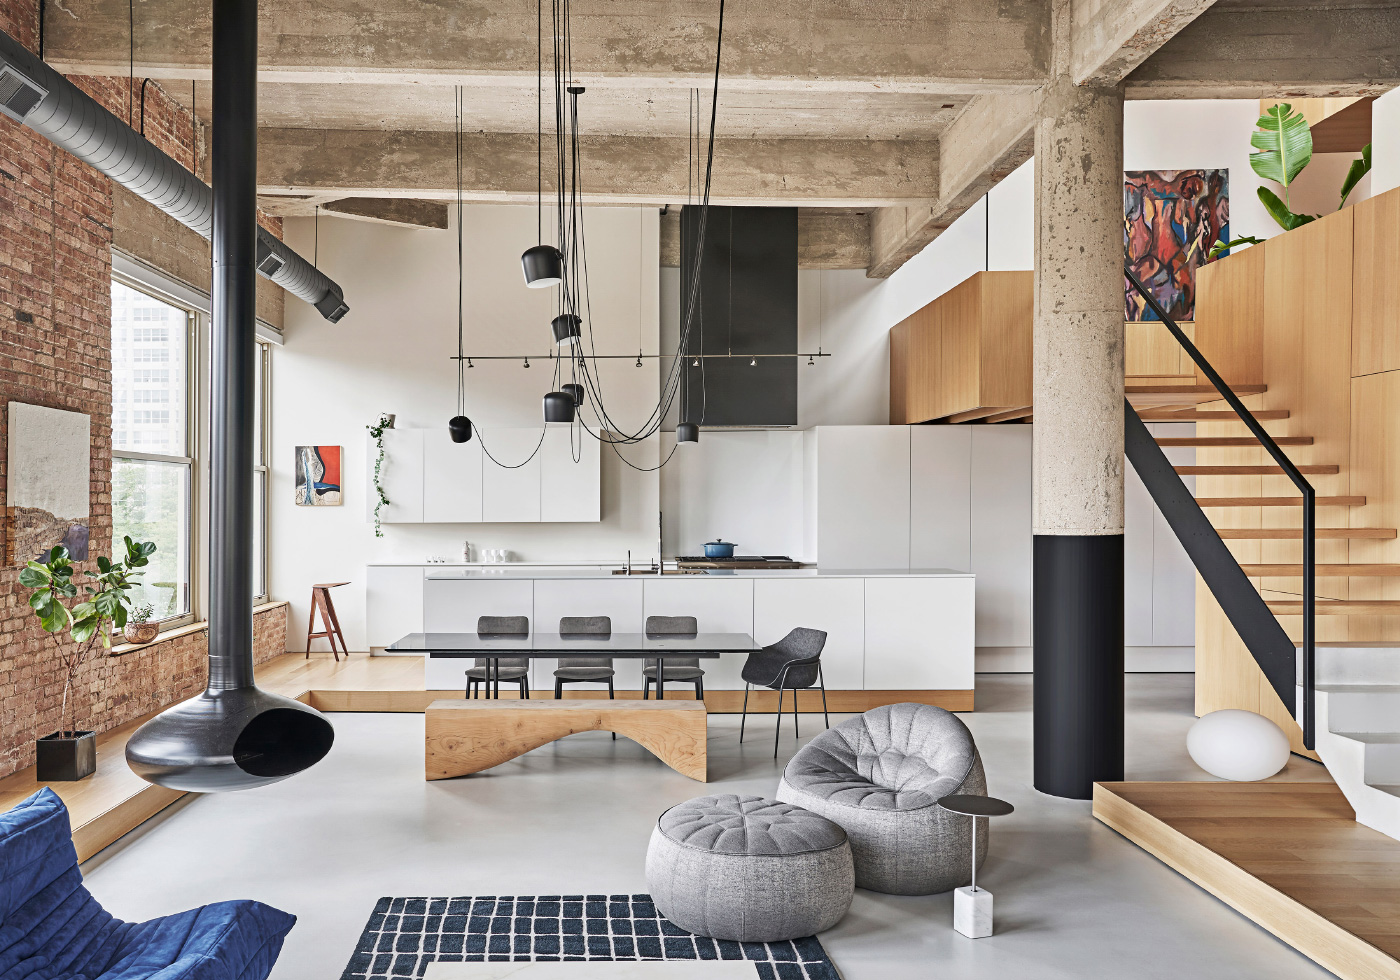 Interior photo of a concrete and timber apartment